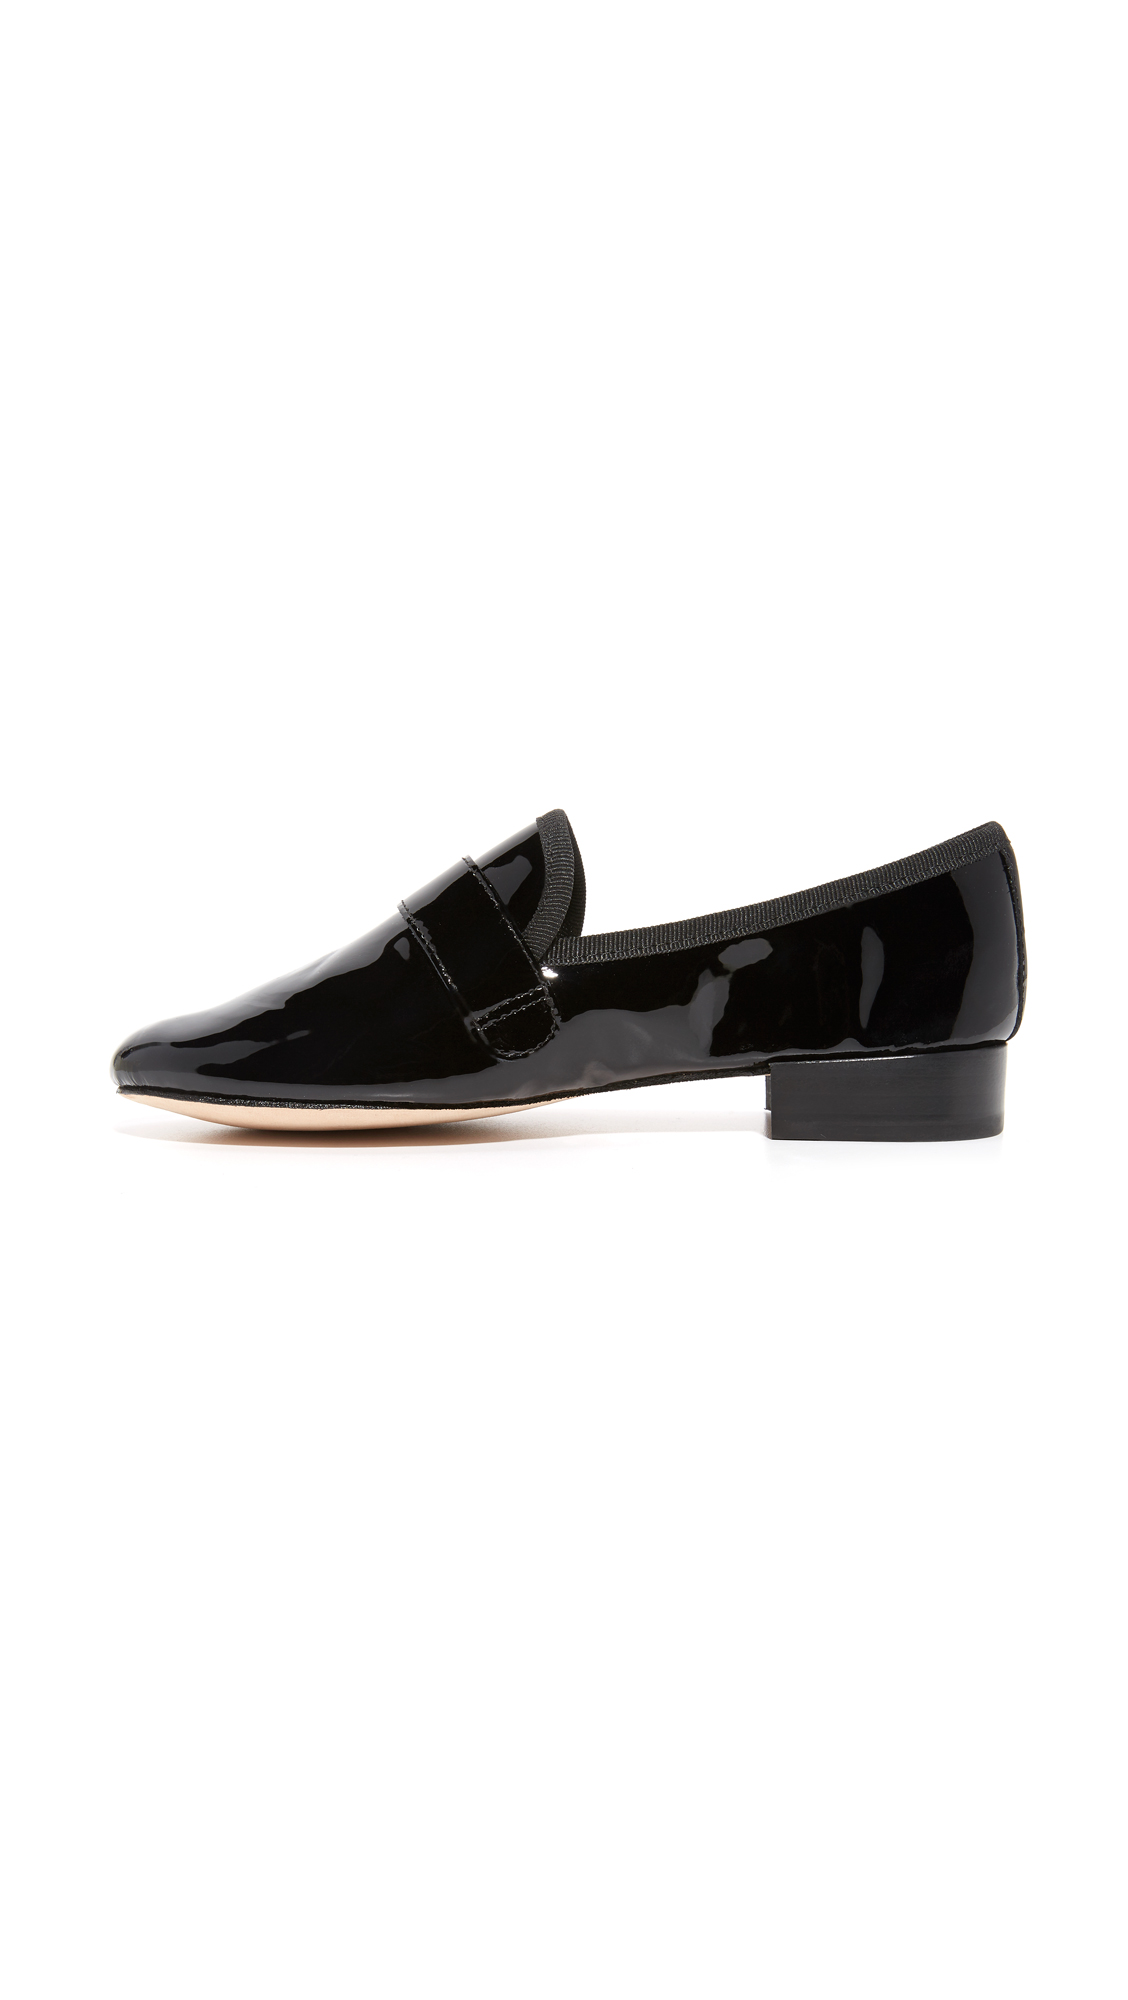 Repetto Michael Loafers Shopbop D Island Shoes Slip On Mocasine Casual Brown